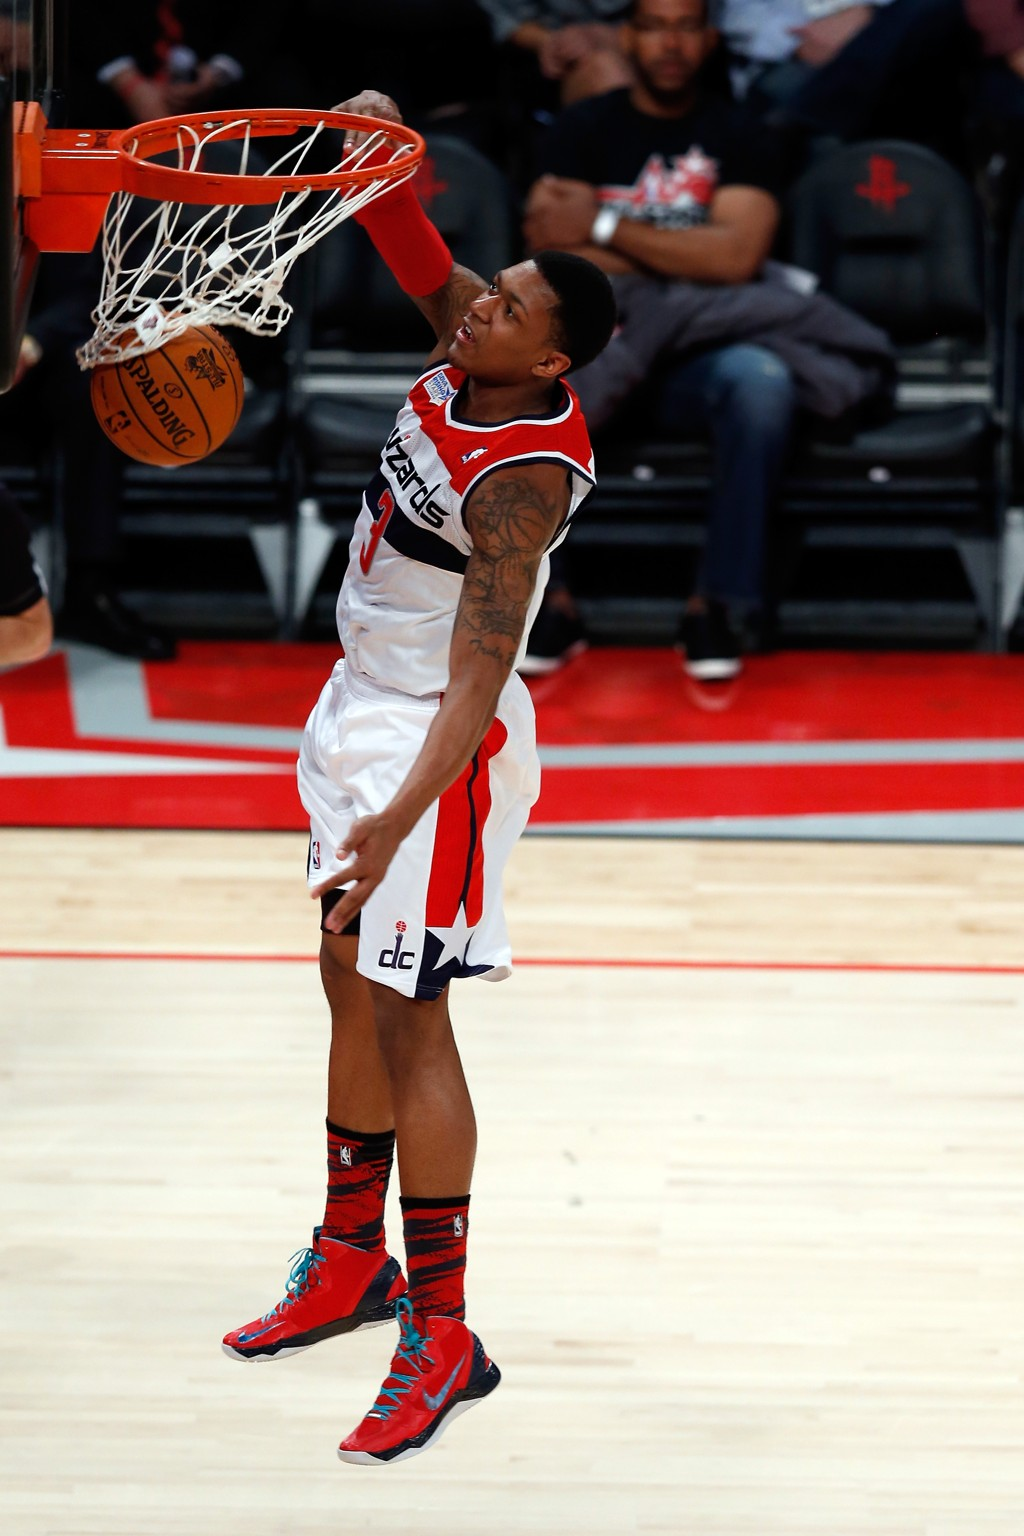 Wizards rookie guard Bradley Beal was named to the NBA All-Rookie First Team Tuesday after posting 13.9 ppg & 3.8 rpg last season.